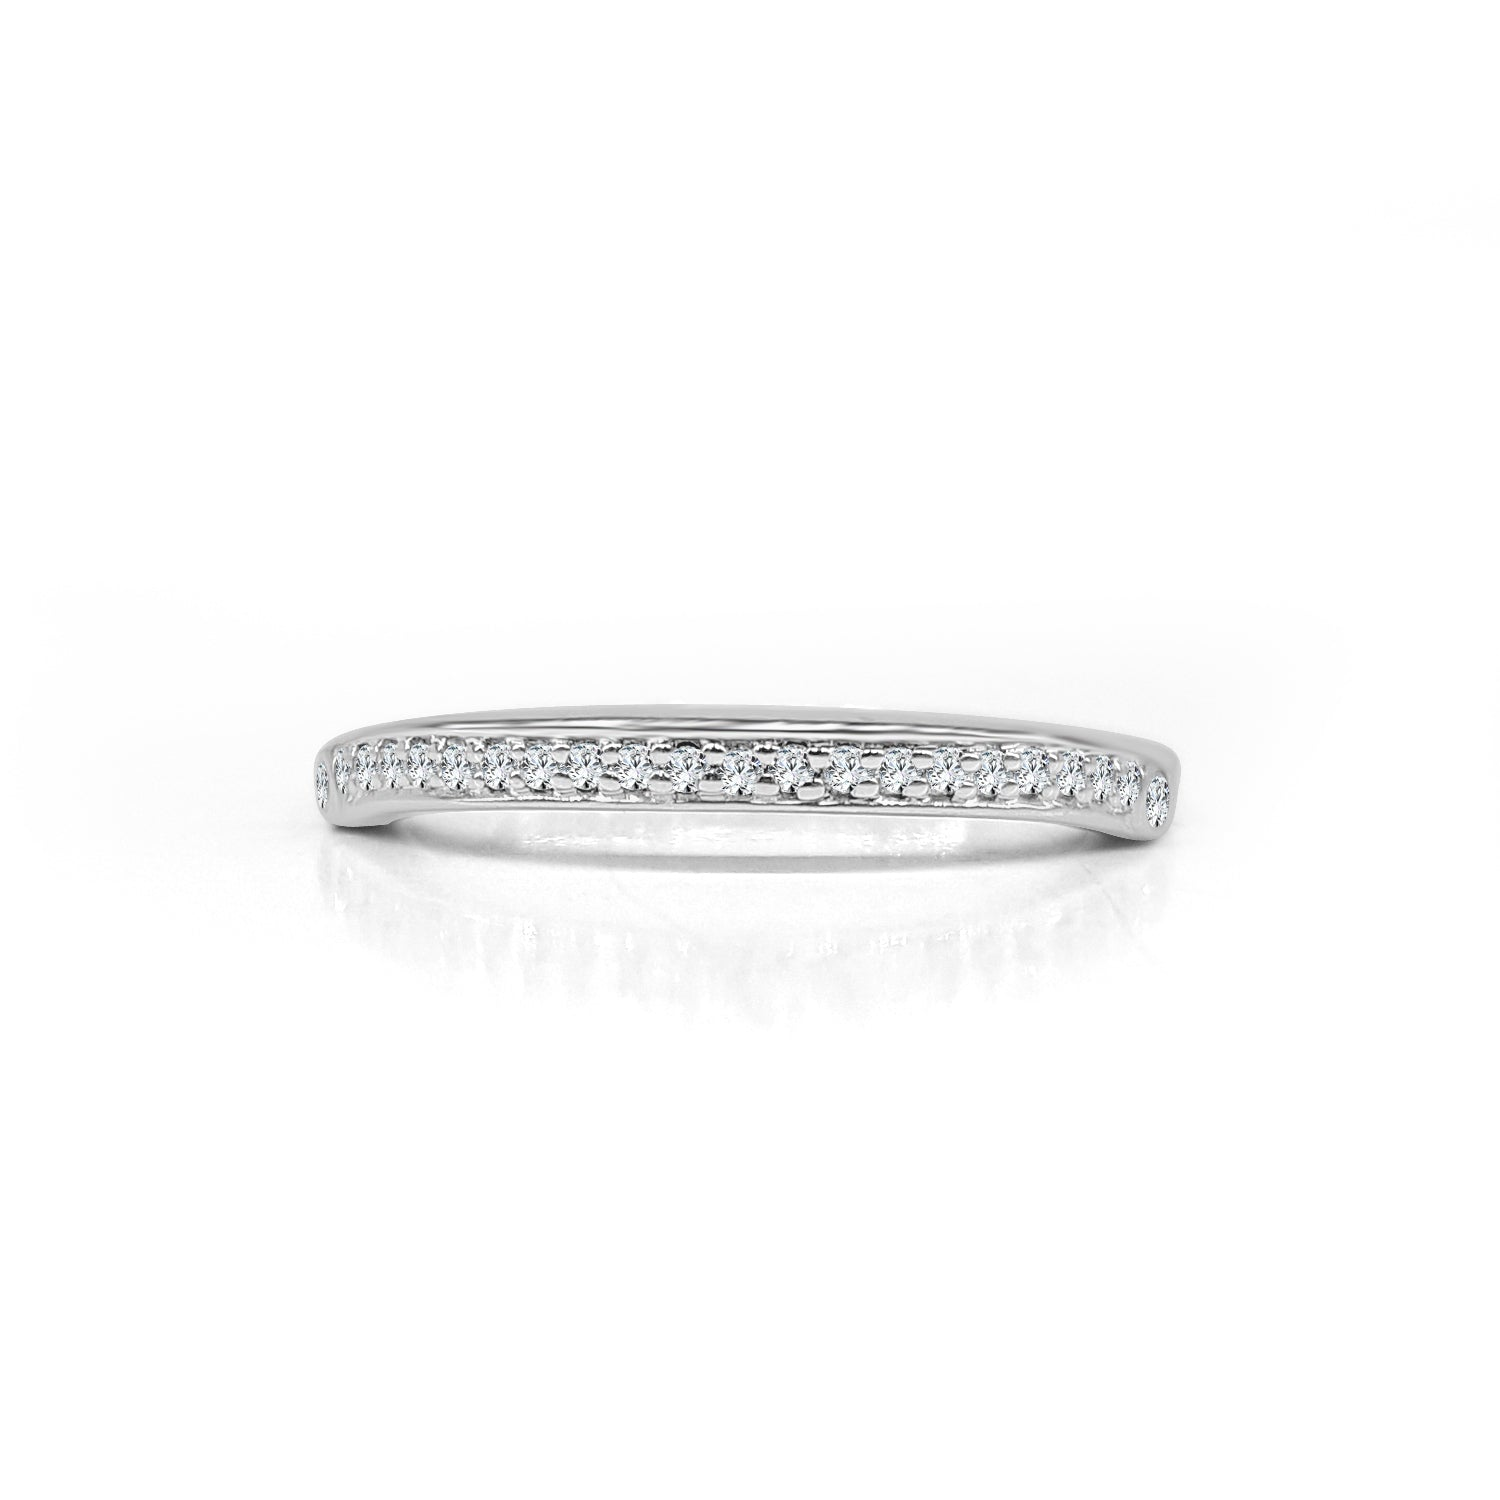 Round Bead Set Diamonds And Diamond Bezel Set Wedding Band – A&J Inc.